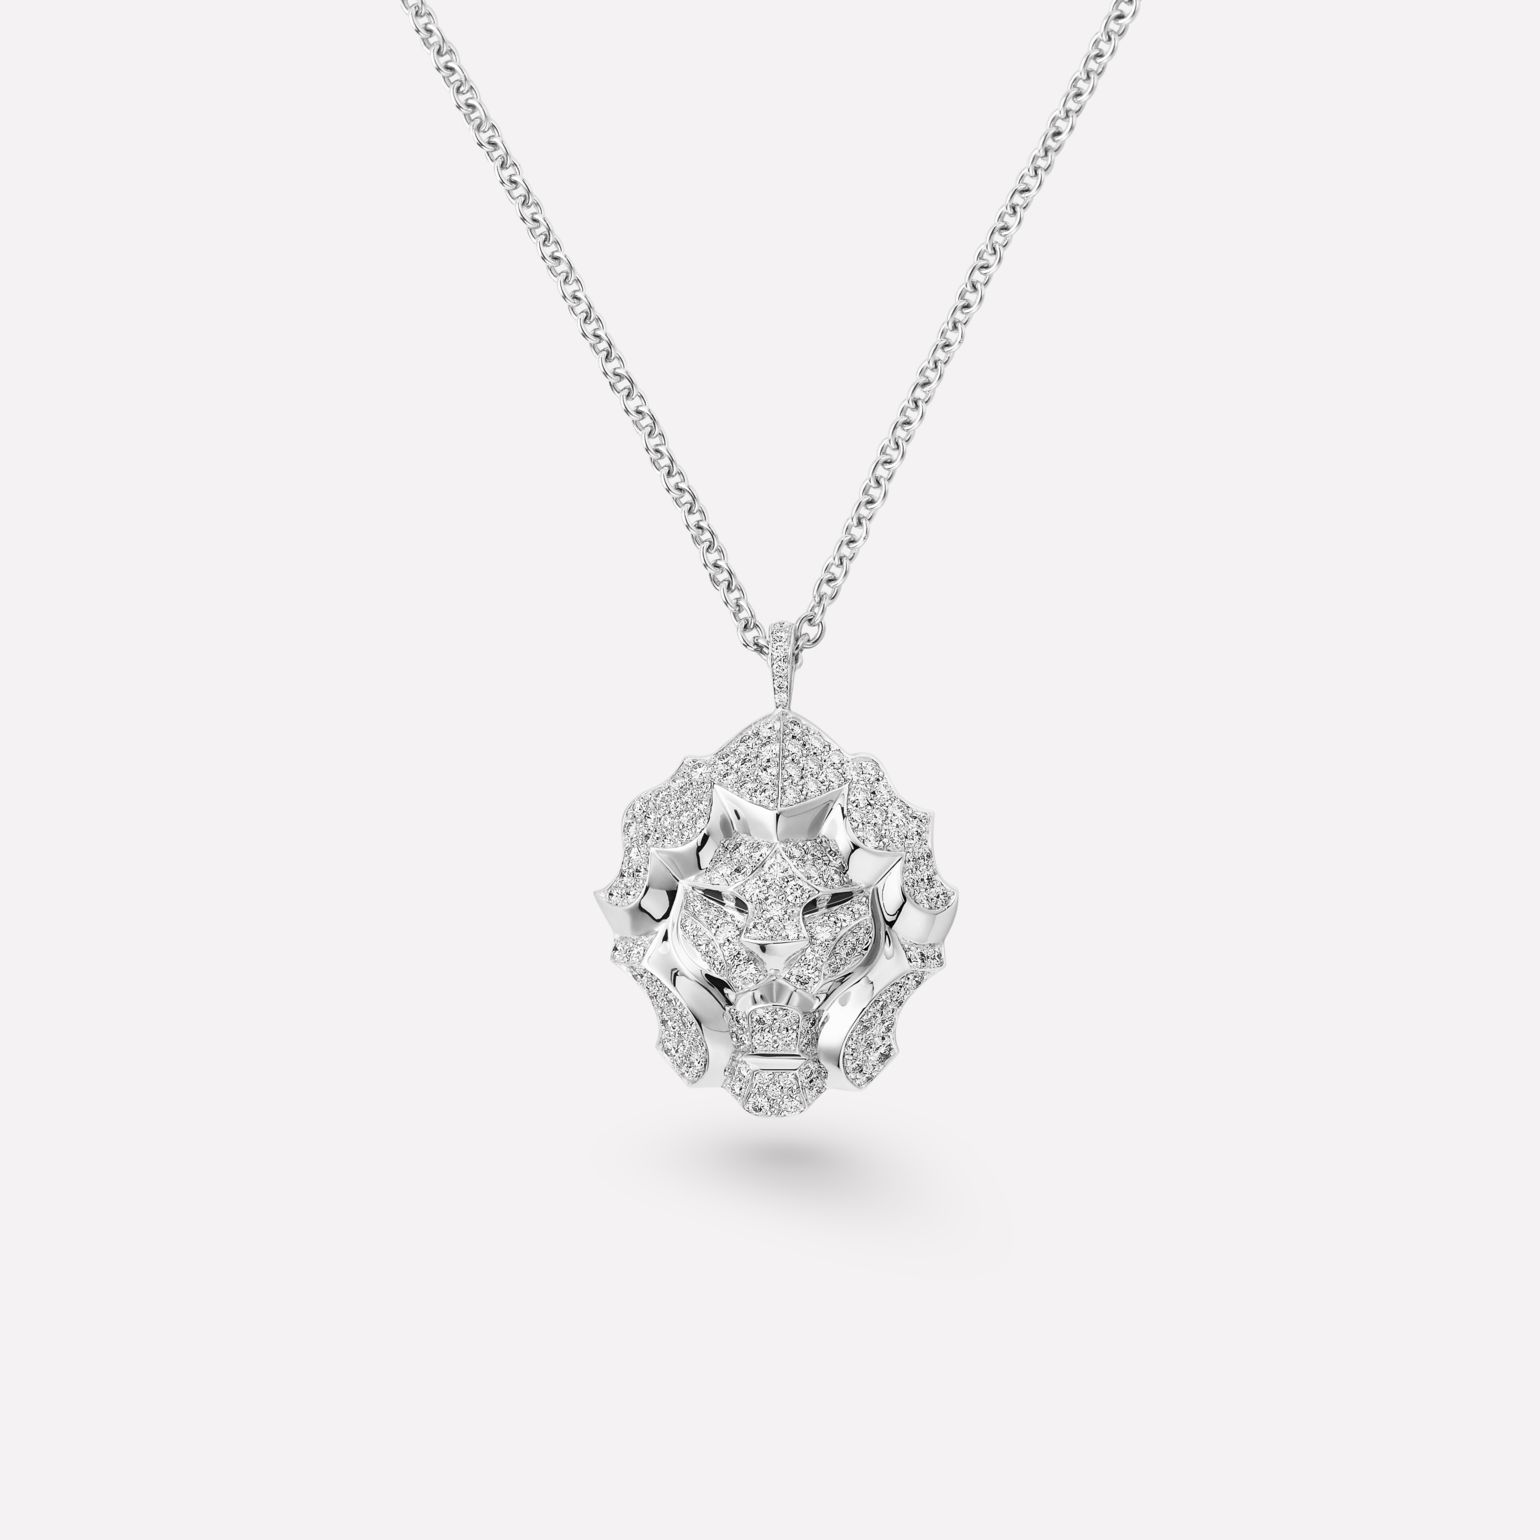 Sous le Signe du Lion necklace 18K white gold, diamonds